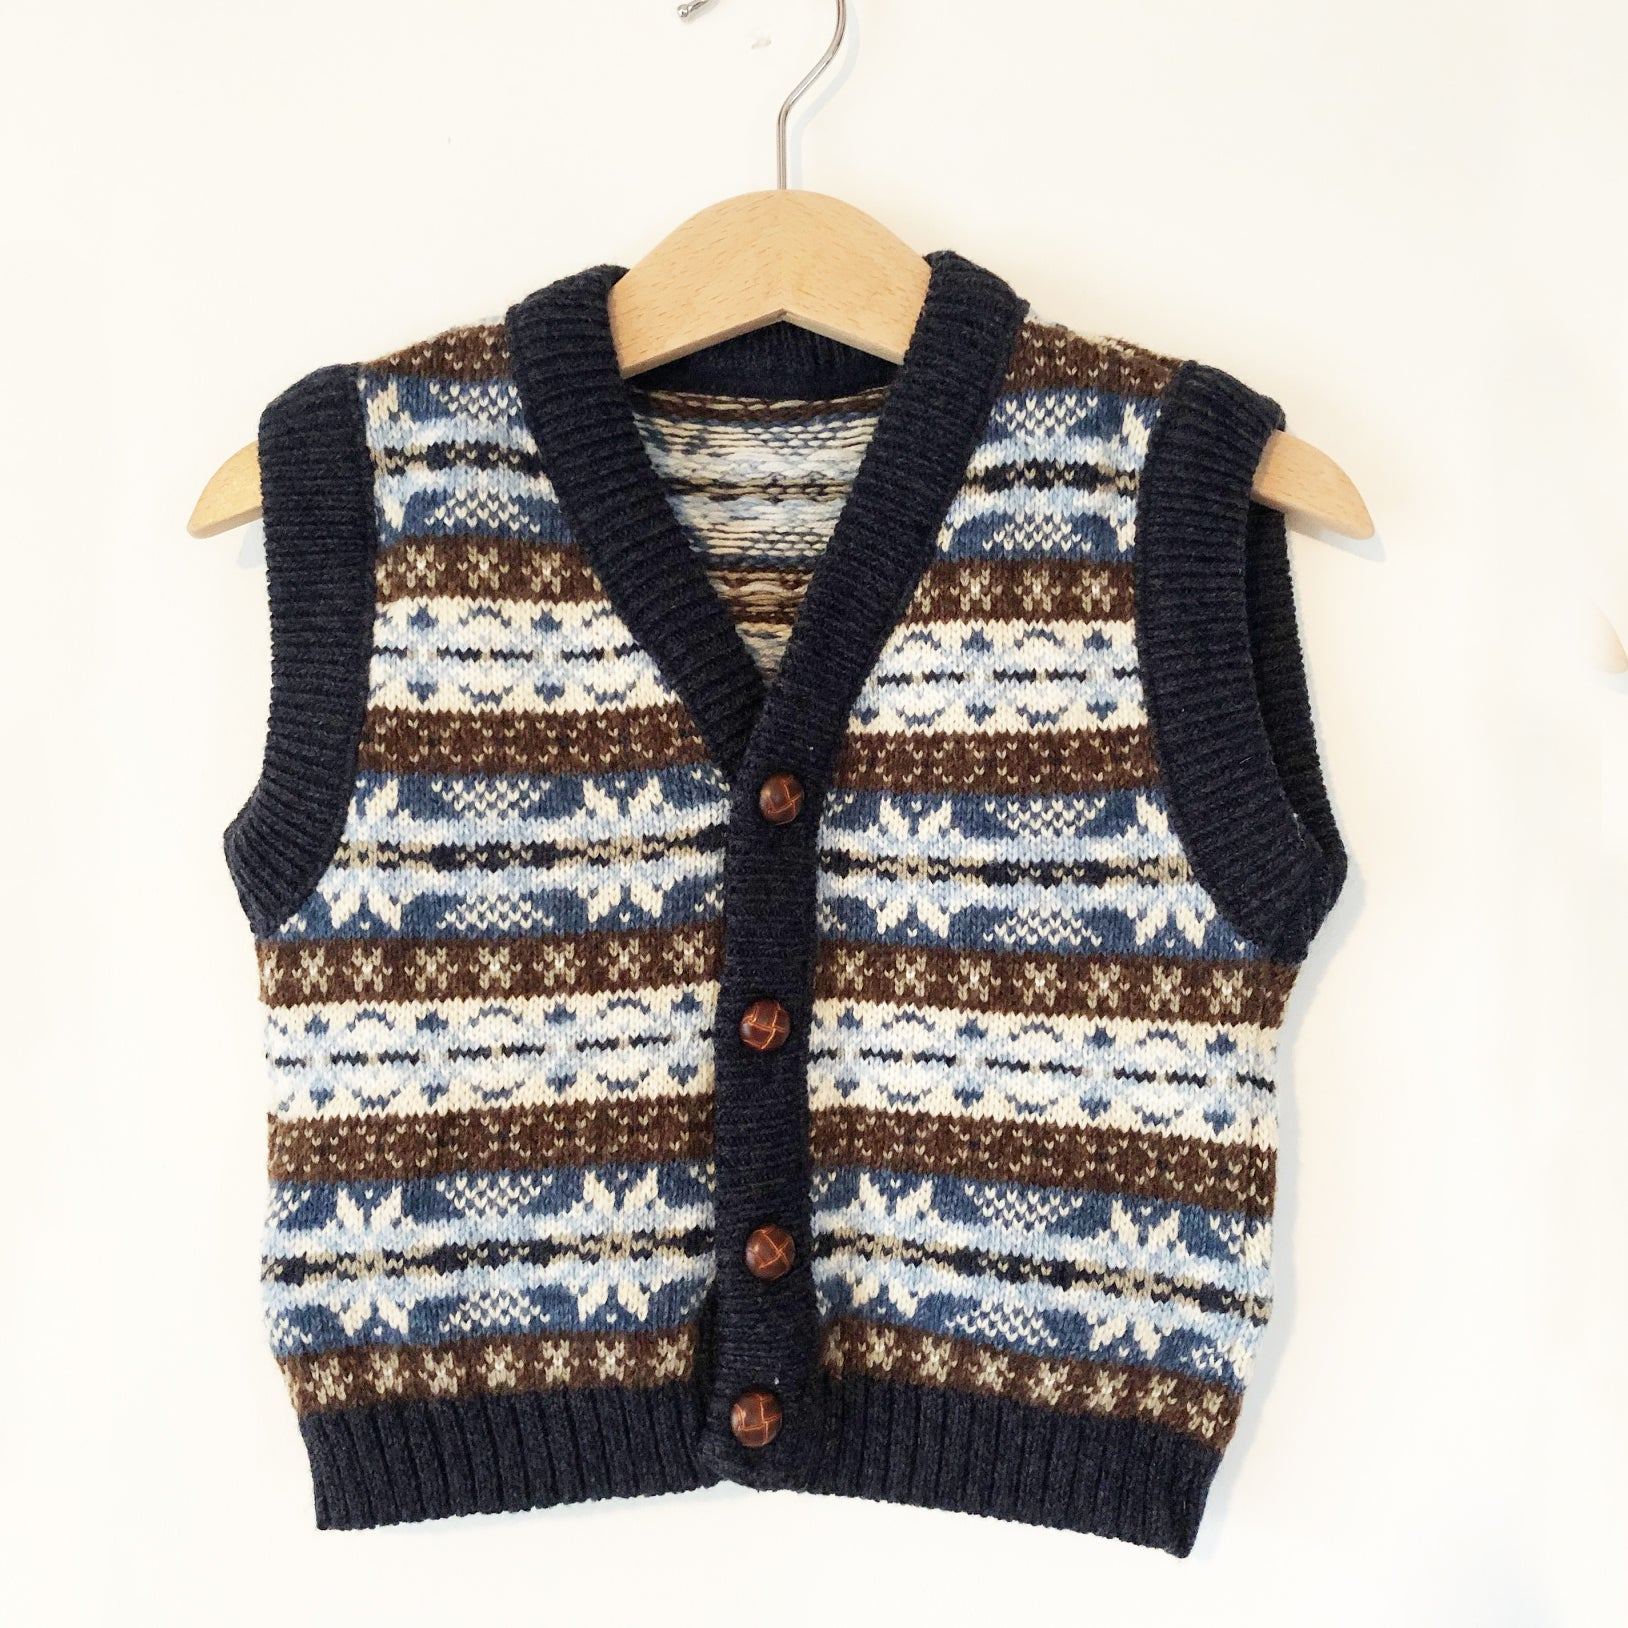 Little Fairisle Knit Vest size 1-2T